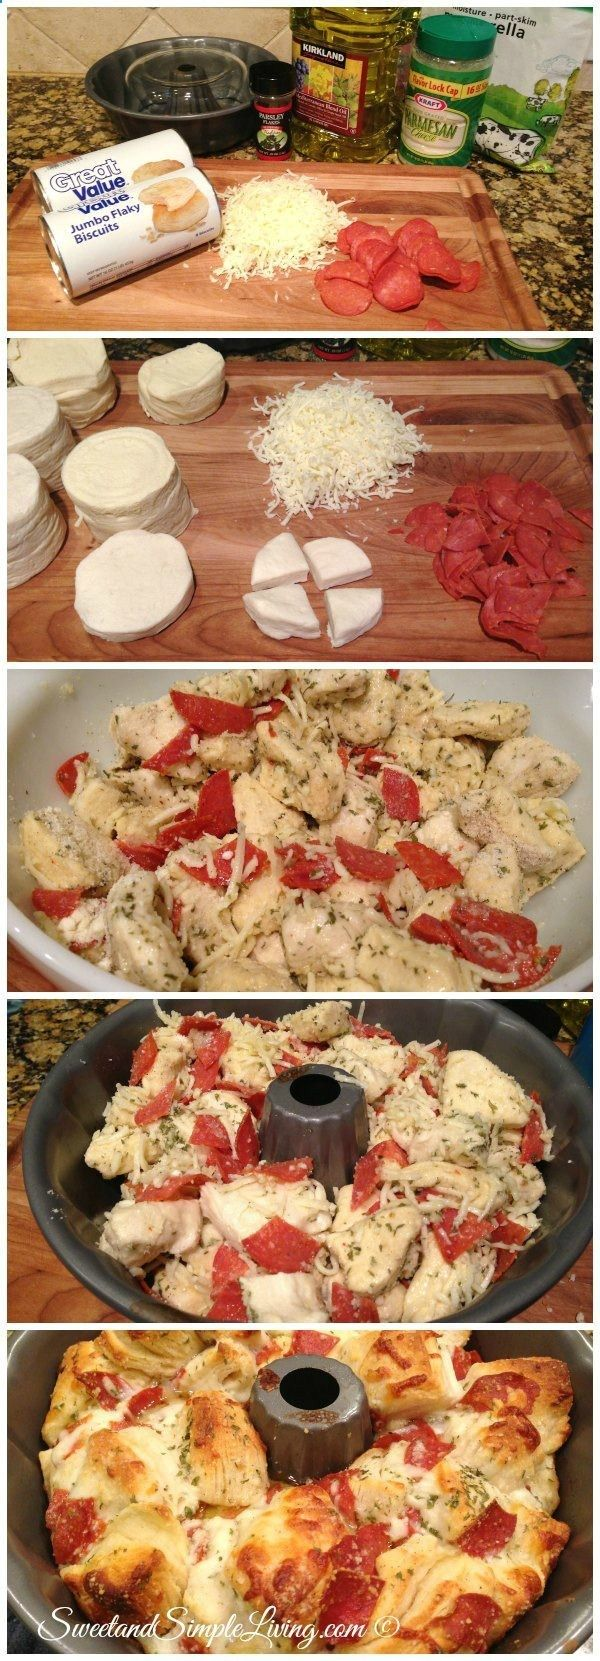 Easy Pull Apart Pizza Bread. Pepperoni, salami, and olives. Pull apart and dip in marinara sauce!,